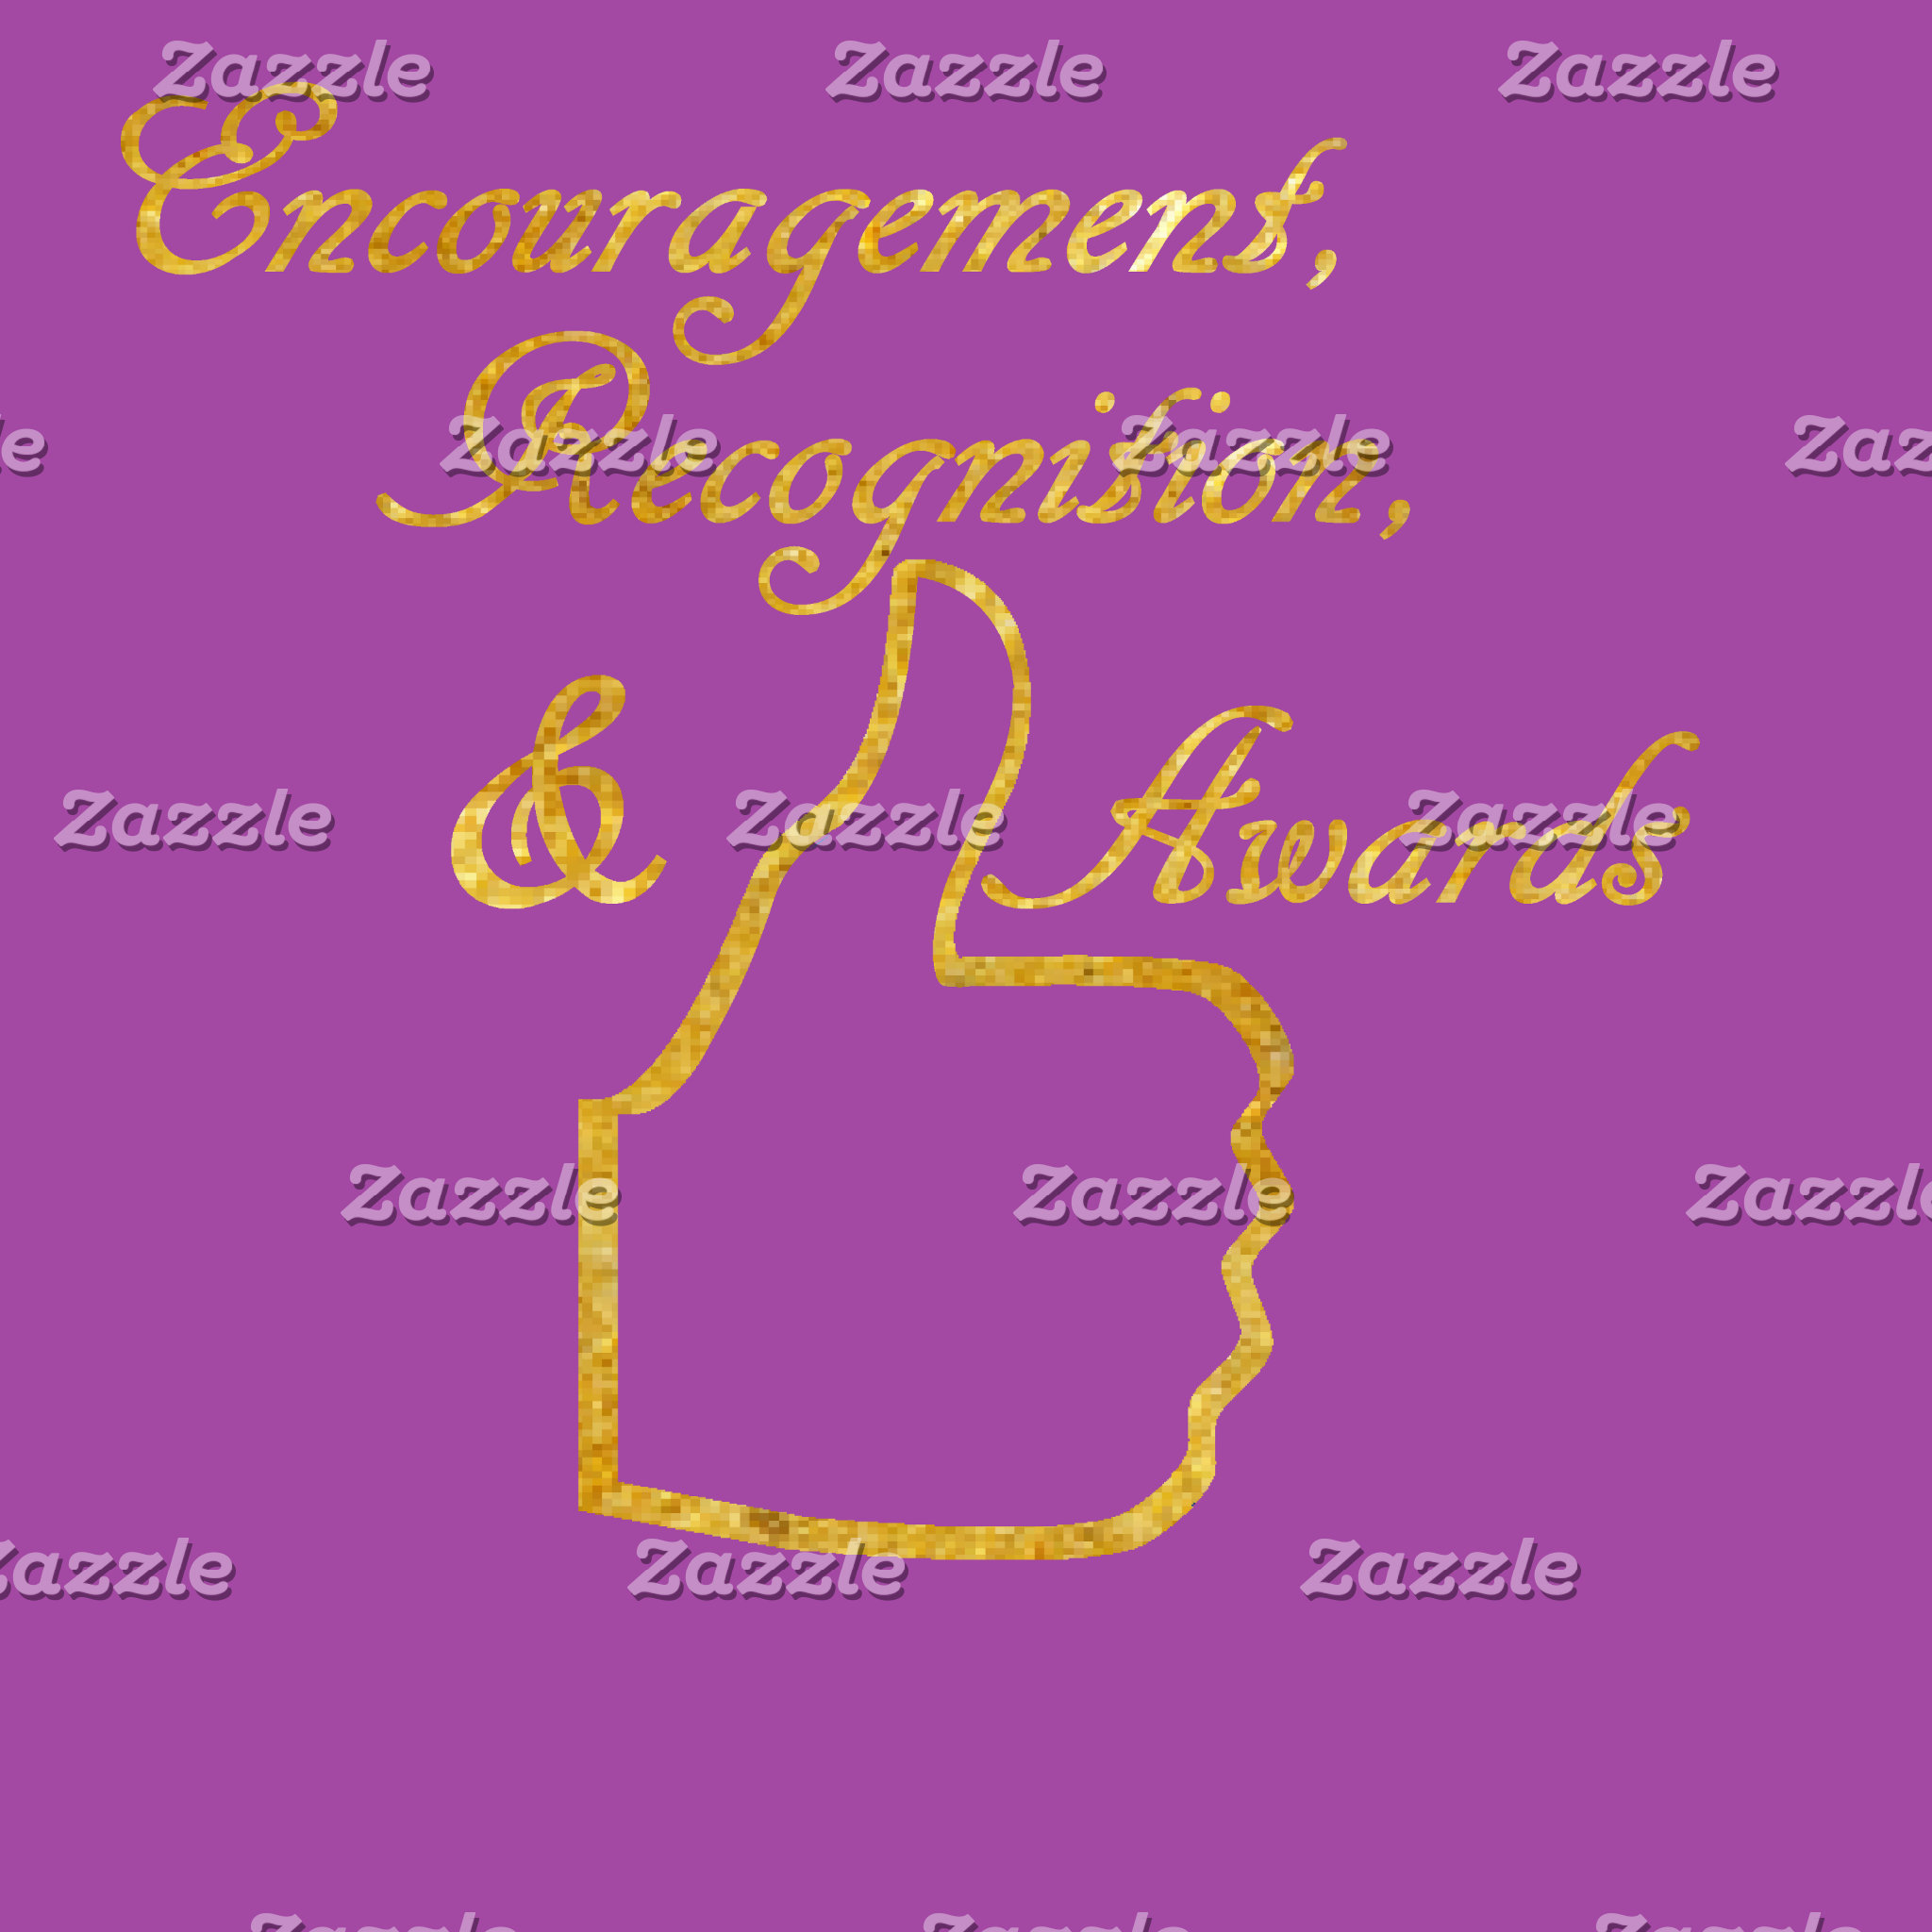 Encouragement, Recognition, & Awards